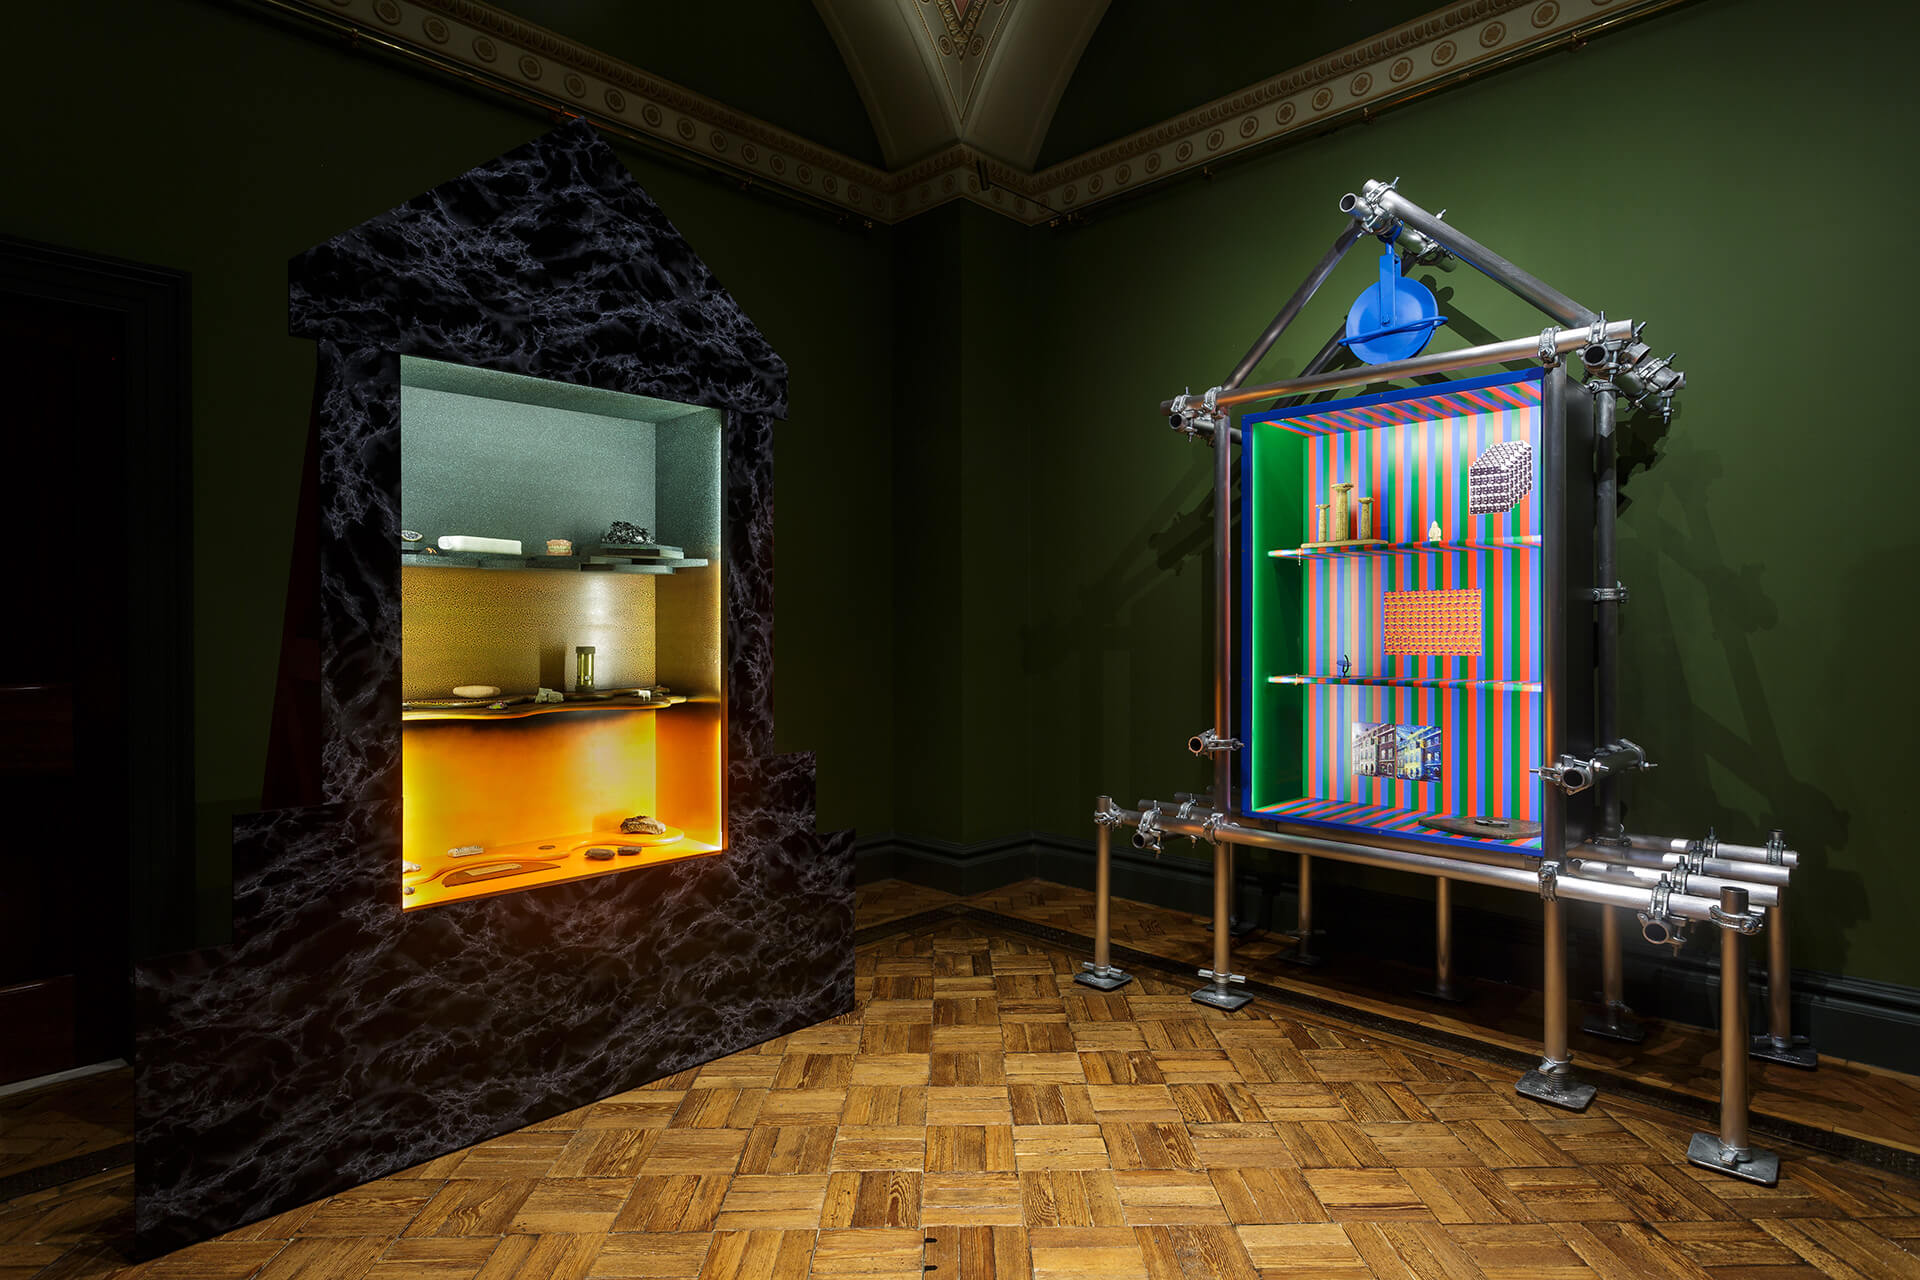 The installations depicting past and present state of architecture | John Soane Museum| All that could have been | STIRworld